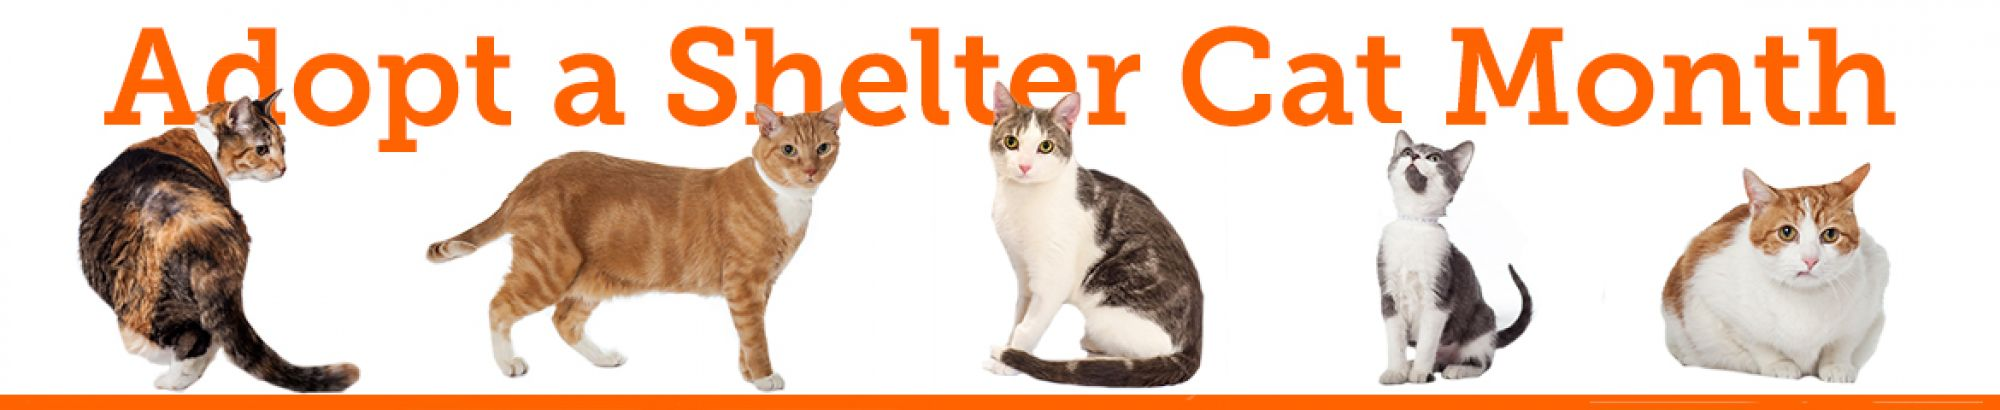 Adopt a Shelter Cat Month Campaign